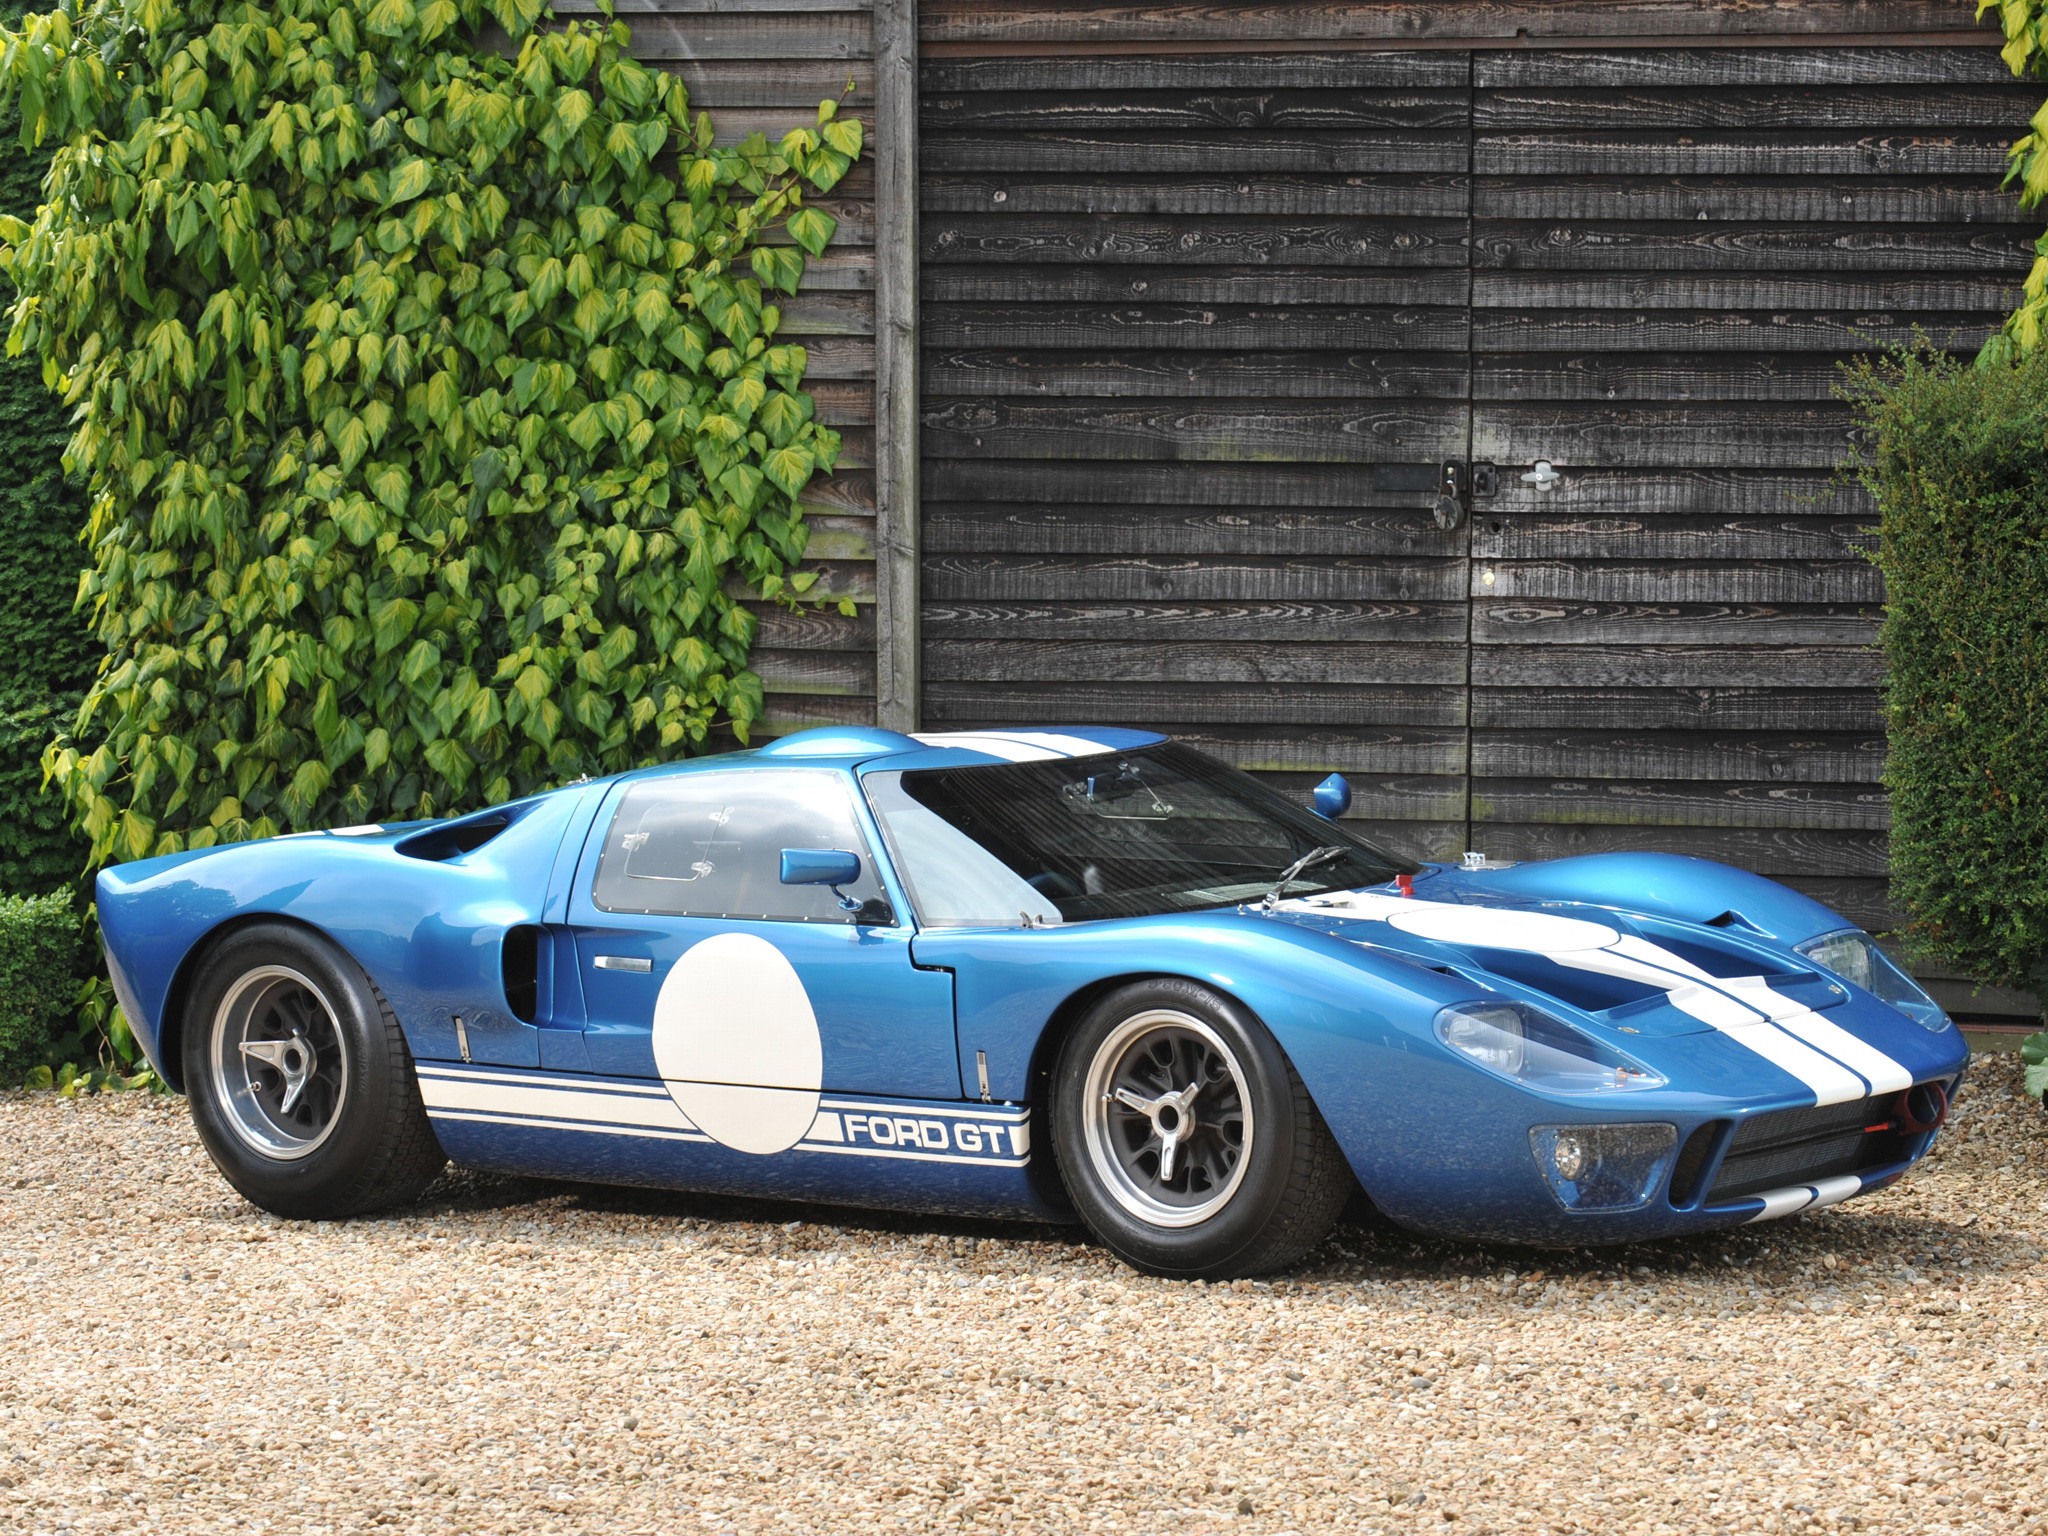 Res: 2048x1536, 1965 Ford GT40 MkII supercar race racing classic g-t g wallpaper       147596   WallpaperUP